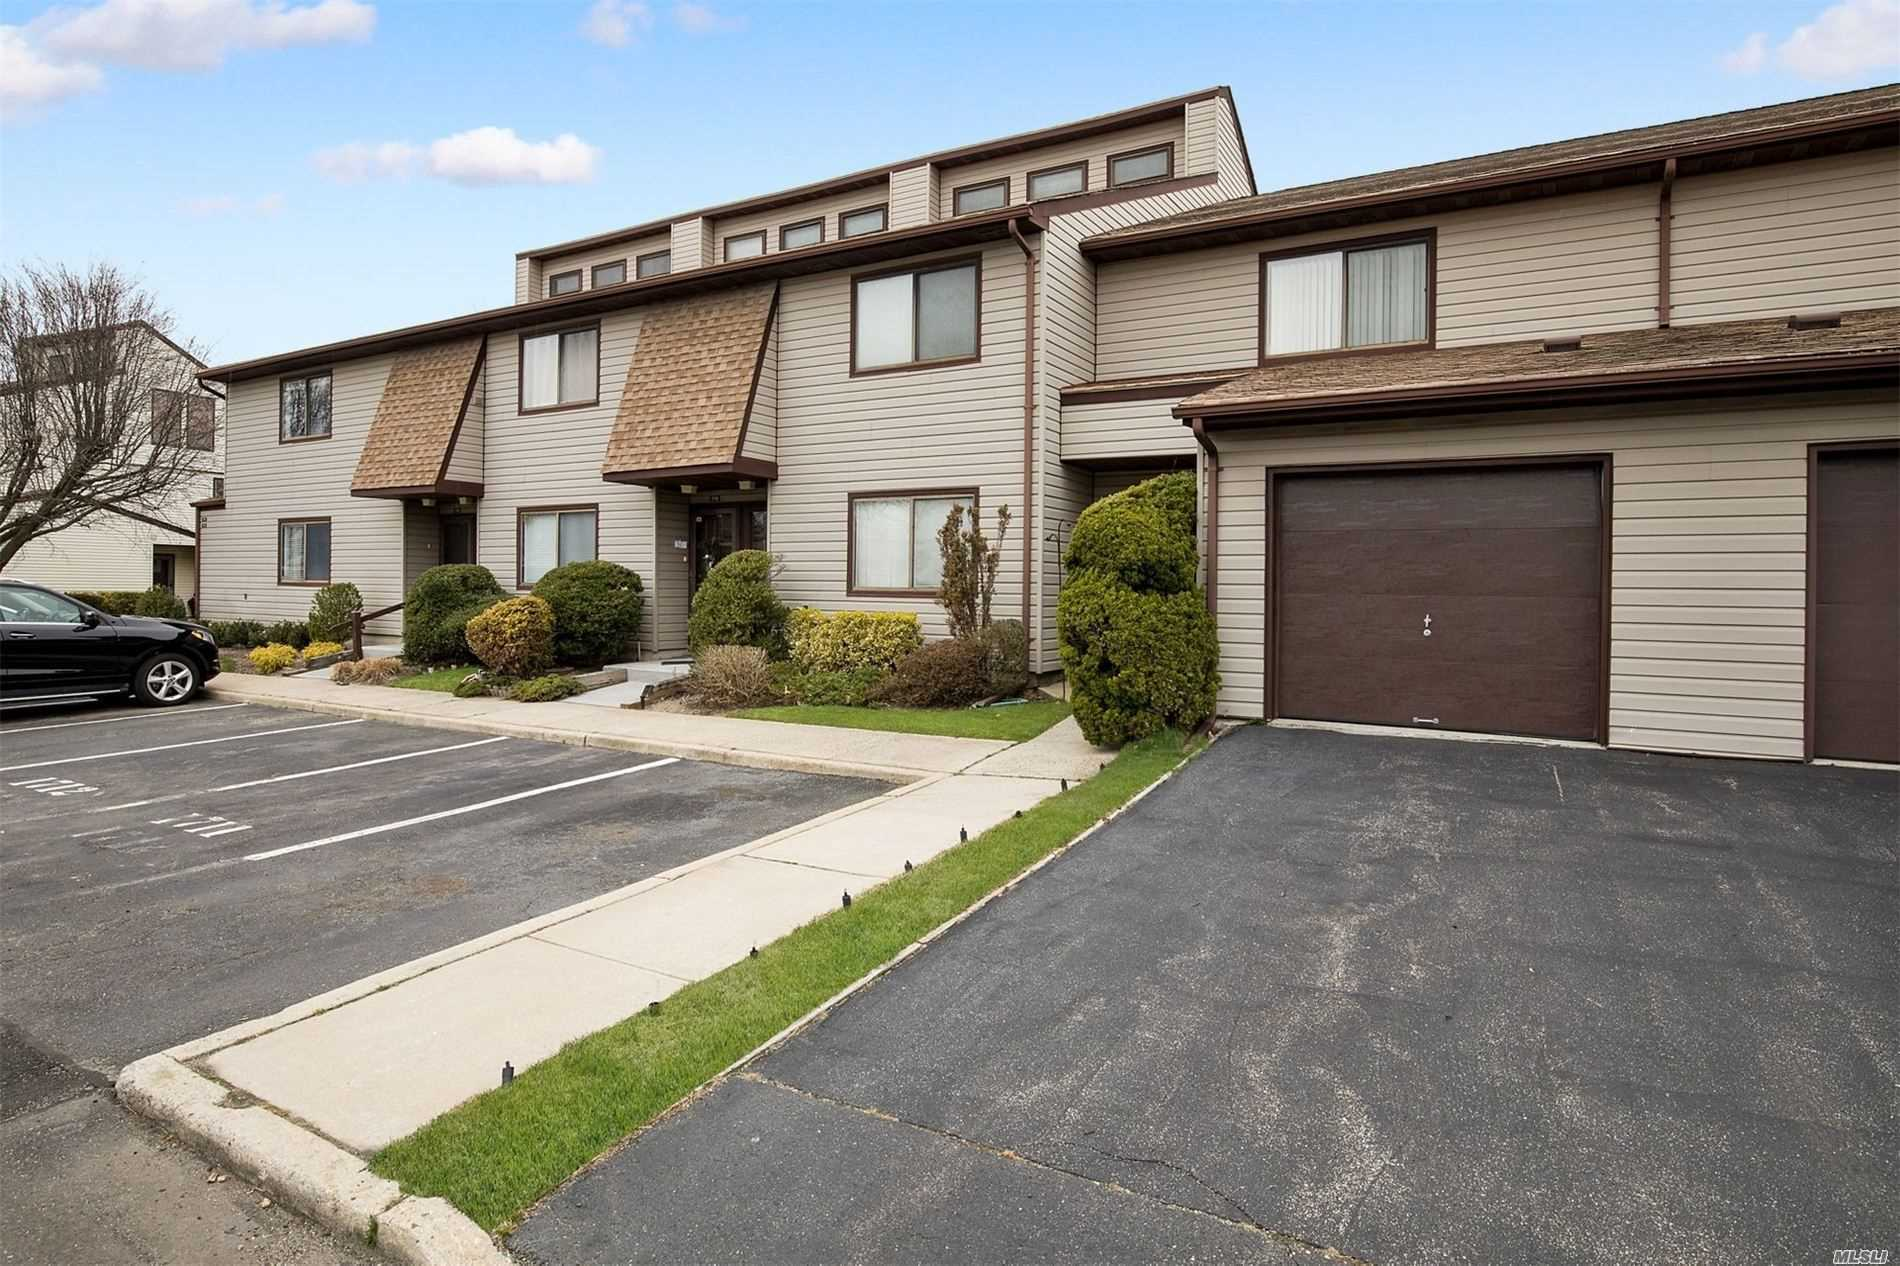 Property for sale at 100 Daly Blvd Unit 1710, Oceanside,  New York 11572